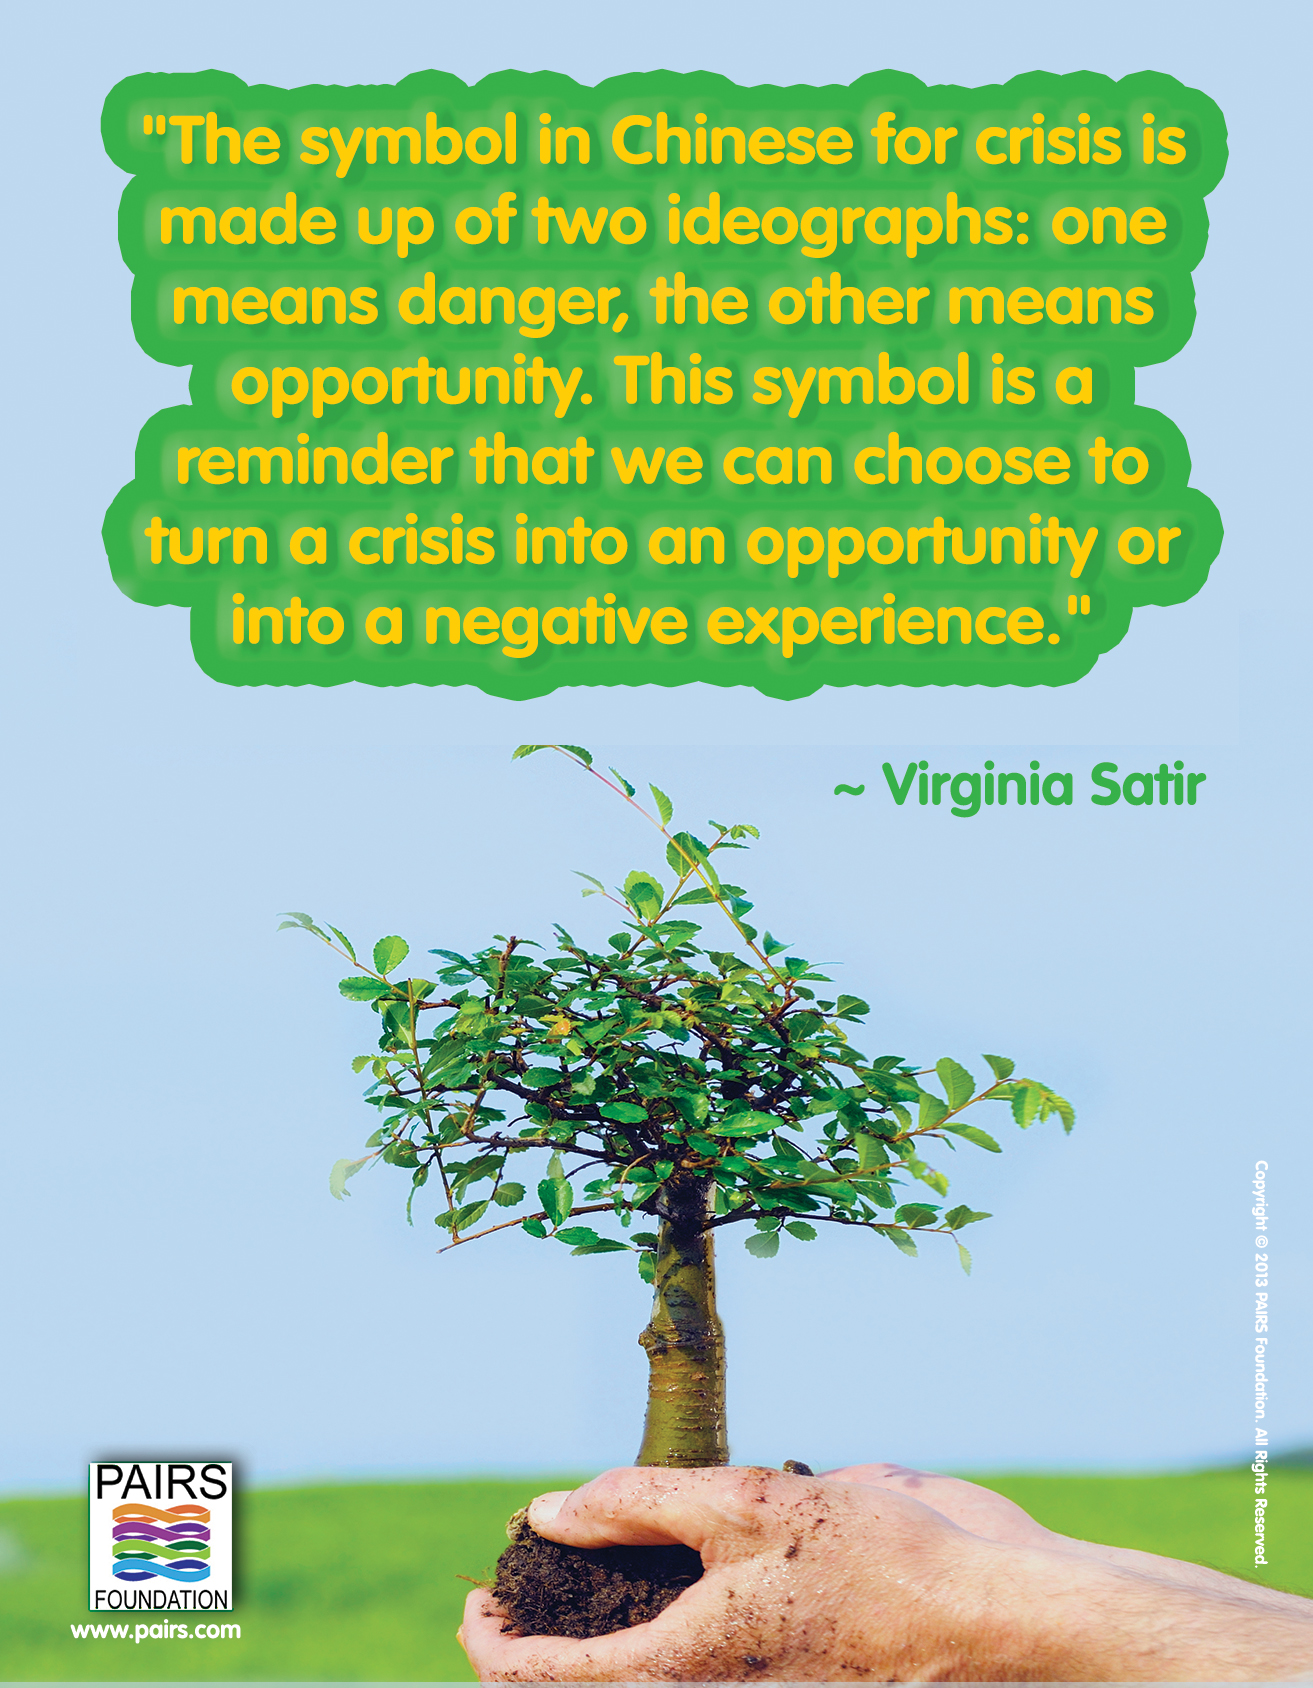 Virginia Satir - Crisis or Opportunity